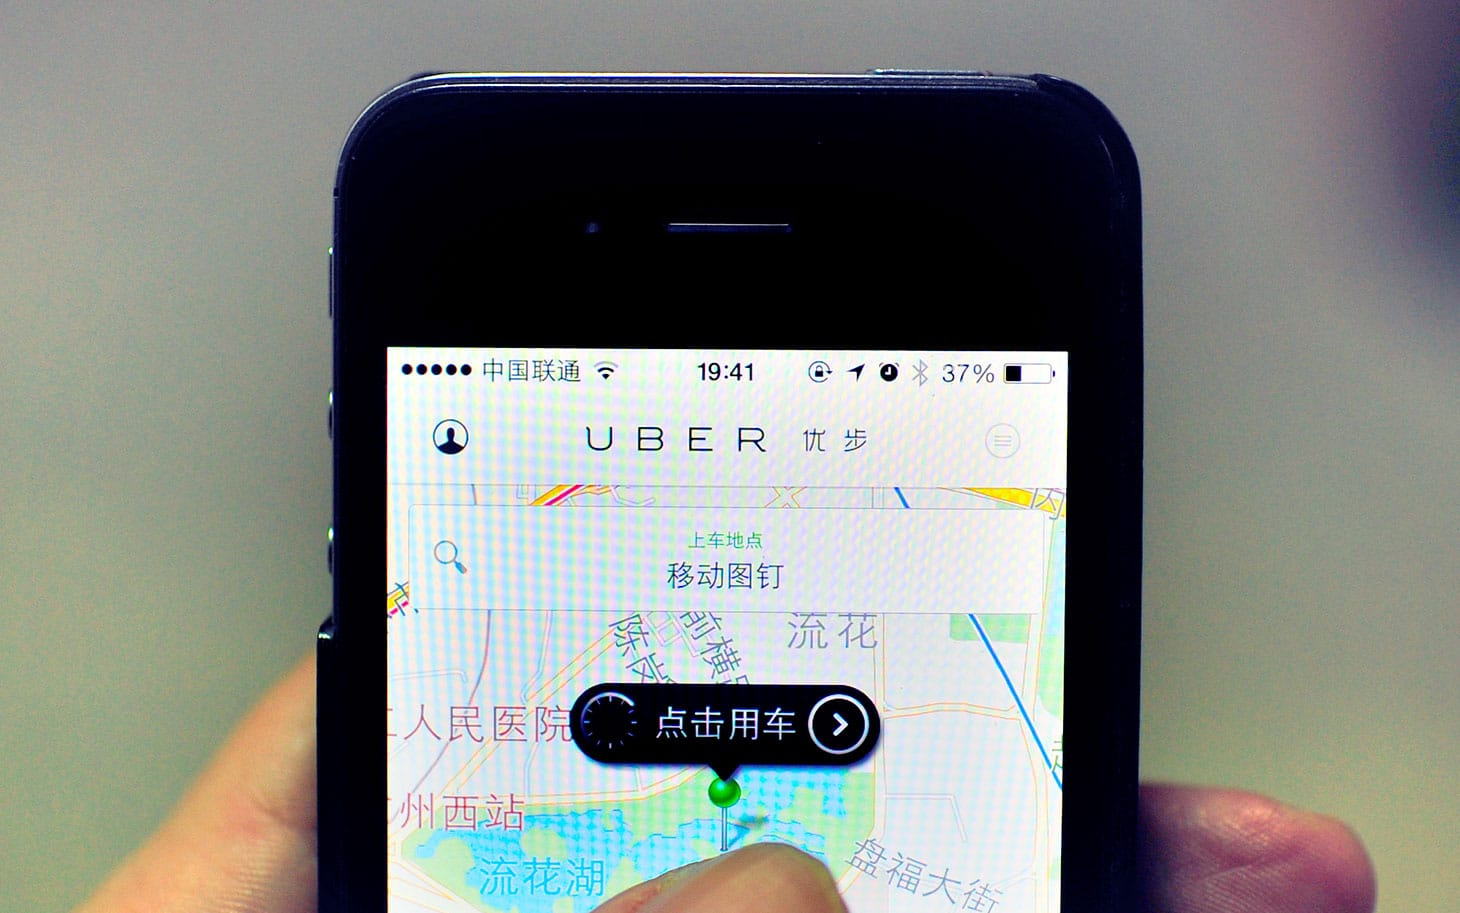 "A man uses the taxi-hailing app Uber on his smartphone in Guangzhou city, south China's Guangdong province, 9 April 2015. Taxi app Uber has set its sights beyond the roads of China with a push into the air and on water as the US company adds helicopters and boats to its ride-hailing services. The company will on Friday (24 April 2015) unveil UberChopper, a sightseeing helicopter ride above Shanghai that will cost 2,999 yuan ($484), including transport in a Mercedes-Benz to and from the helipad. The event is a one-day promotion designed to ""raise awareness"" of Uber, and gauge interest in airborne services. ""Depending on market demand and user interest, we will further explore potential for air travel as a possibility,"" the company said, as it introduces a service already used in other countries including the US, India, Brazil and South Africa. The company has also rolled out a boat-hailing service in the southern city of Hangzhou's scenic West Lake in the past month as well as a trial rickshaw-hailing service in downtown Beijing.(Imaginechina via AP Images)"